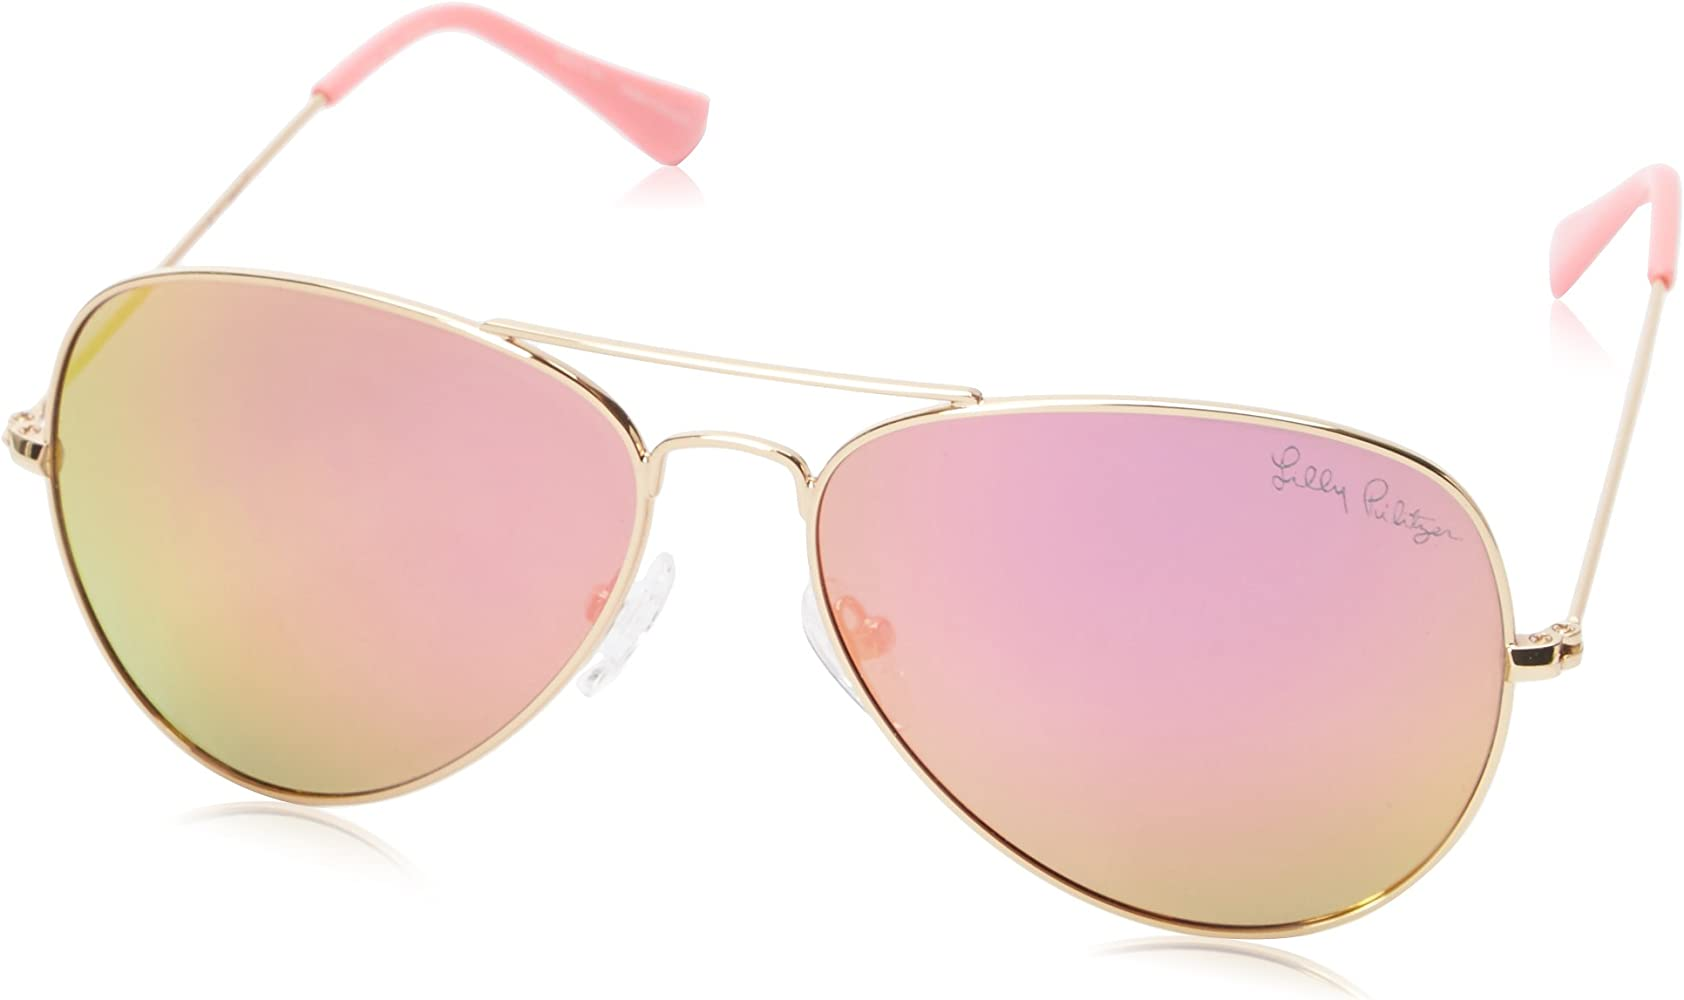 Womens Lexy LEXYSB59 Polarized Aviator Sunglasses